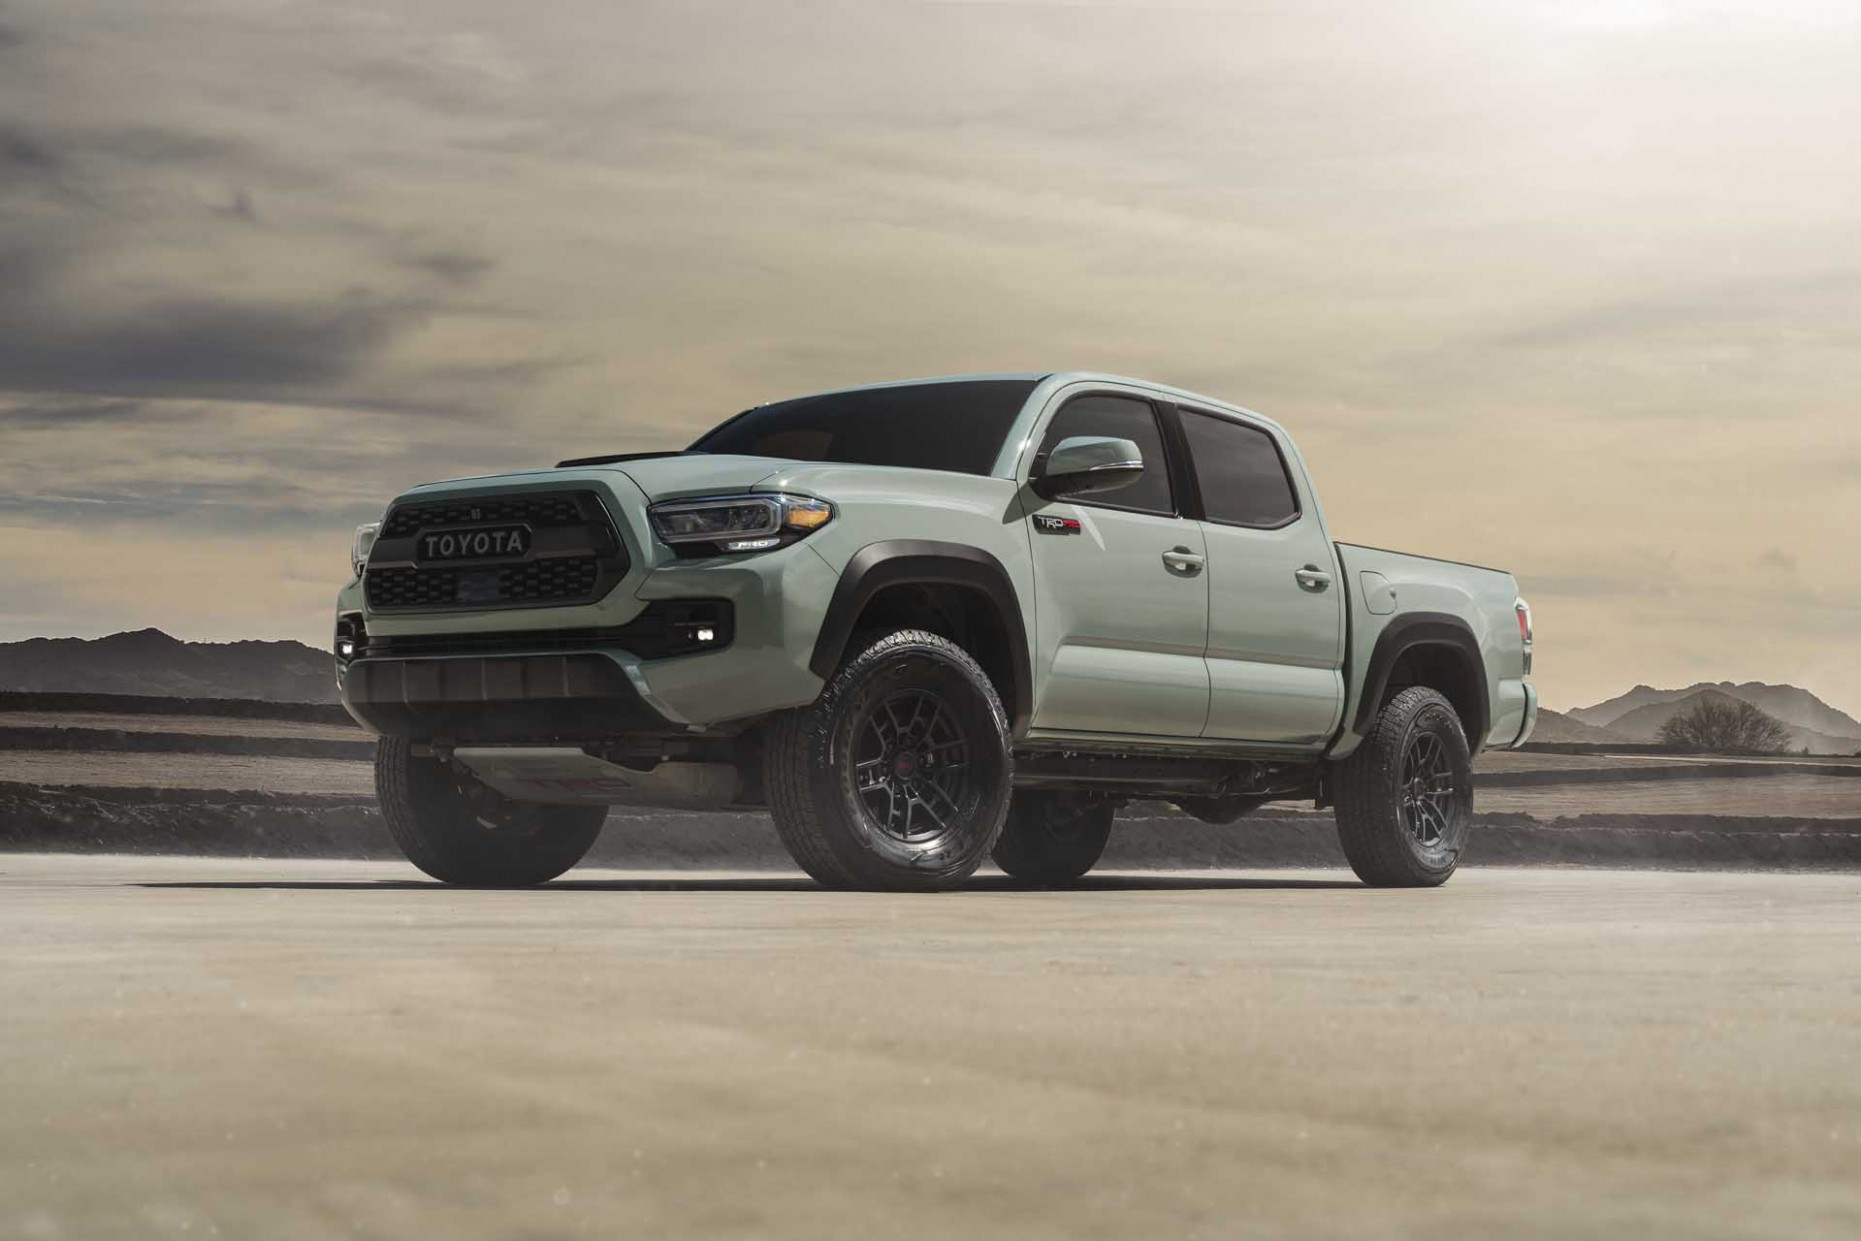 4 Toyota Tacoma Review, Ratings, Specs, Prices, and Photos - Toyota Tacoma 2021